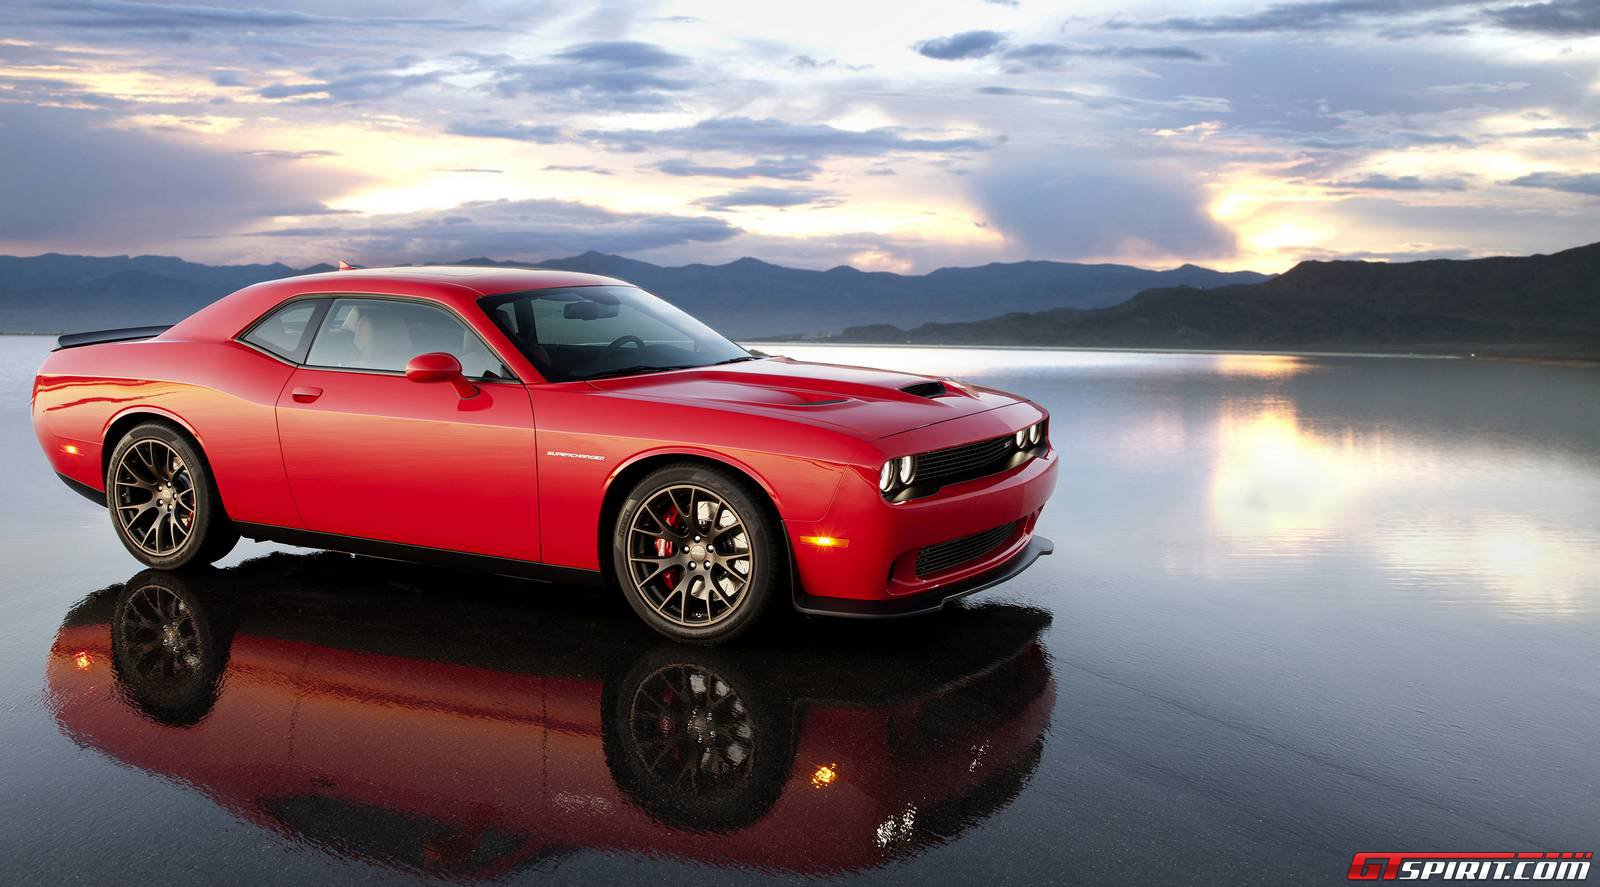 dodge challenger srt hellcat has 707hp and 650lb ft gtspirit. Black Bedroom Furniture Sets. Home Design Ideas